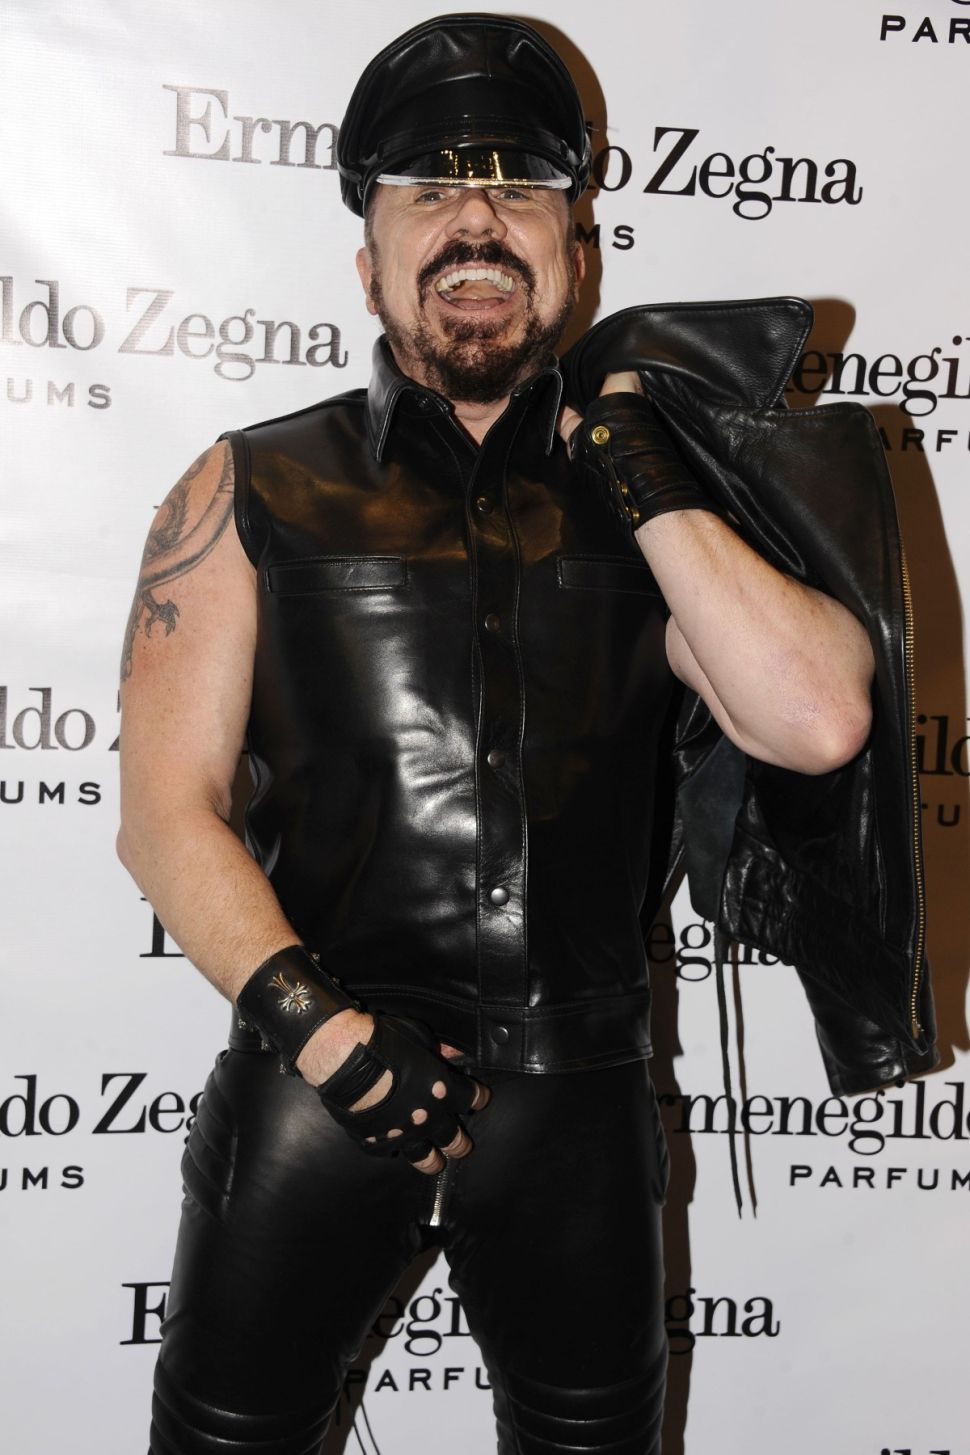 Peter Marino, Still In Leather, Details the Mammoth Exhibition of His Collection